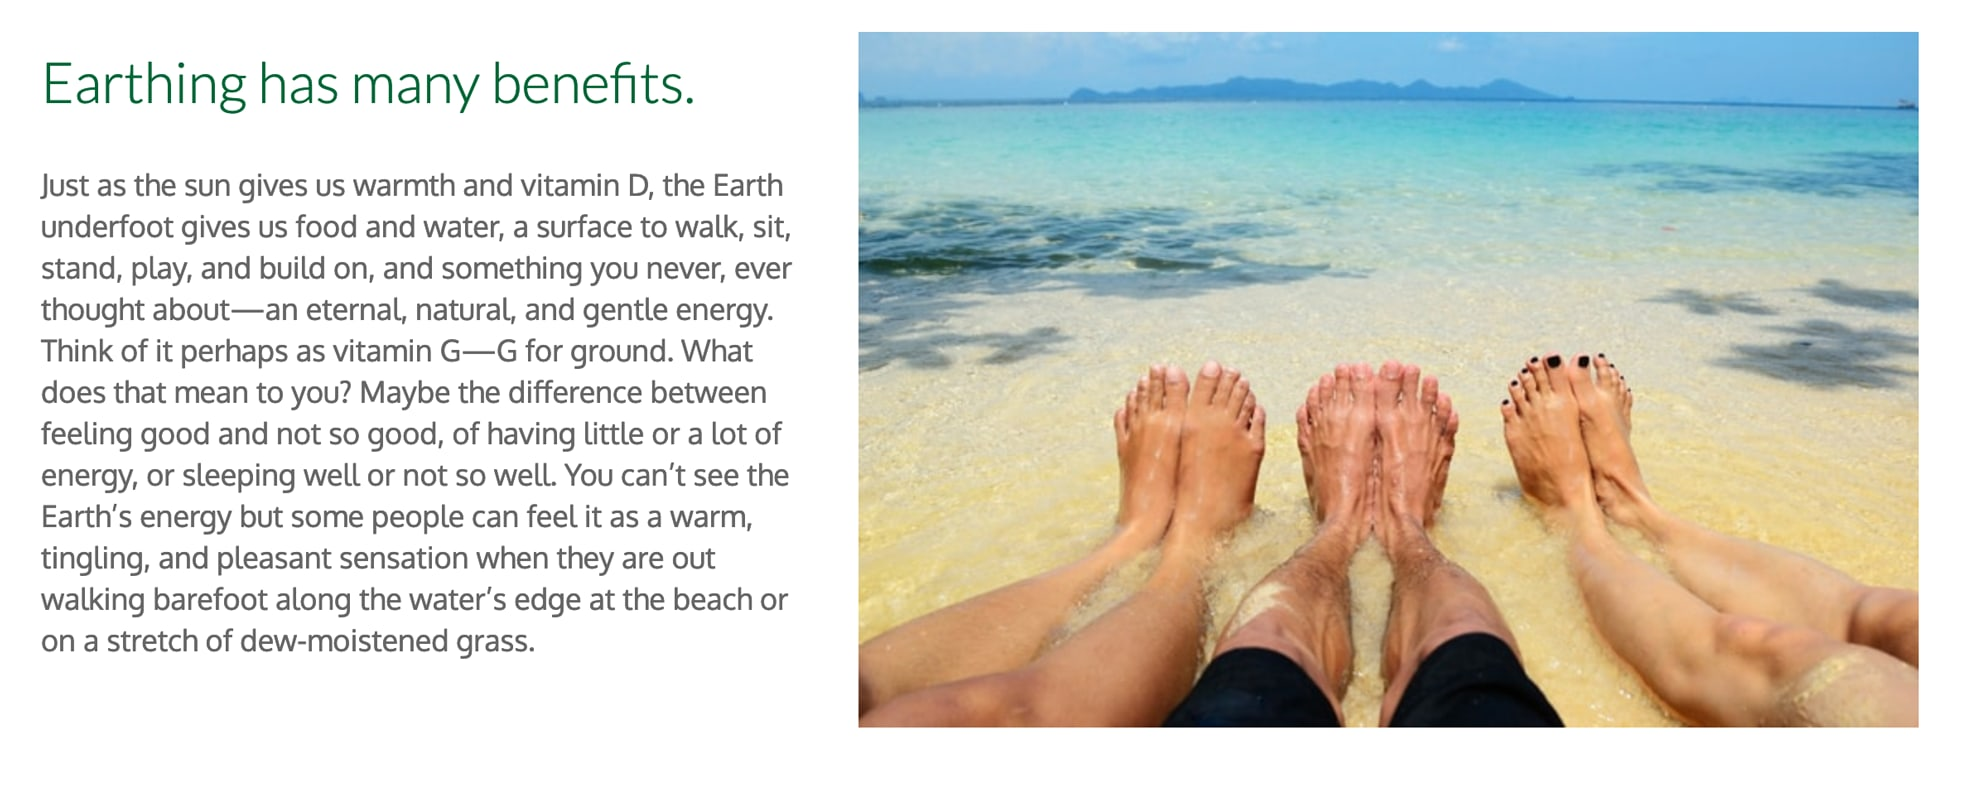 Image explaining what grounding is, which involves having barefoot contact with the earth